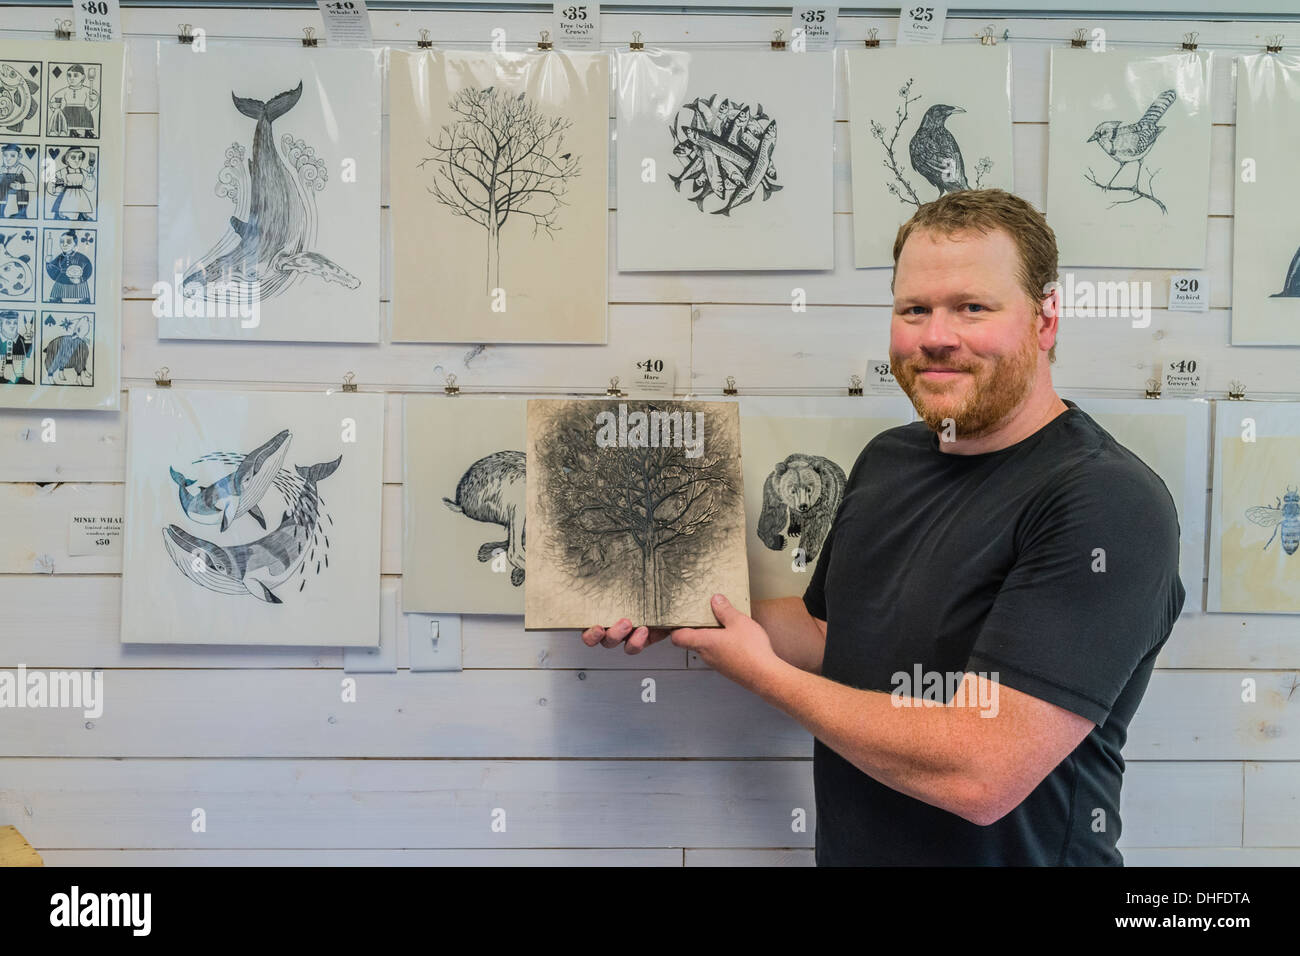 Artist Graham Blair, a woodblock printmaker holds an inked woodblock at his studio in Quidi Vidi in St. John's Newfoundland. - Stock Image